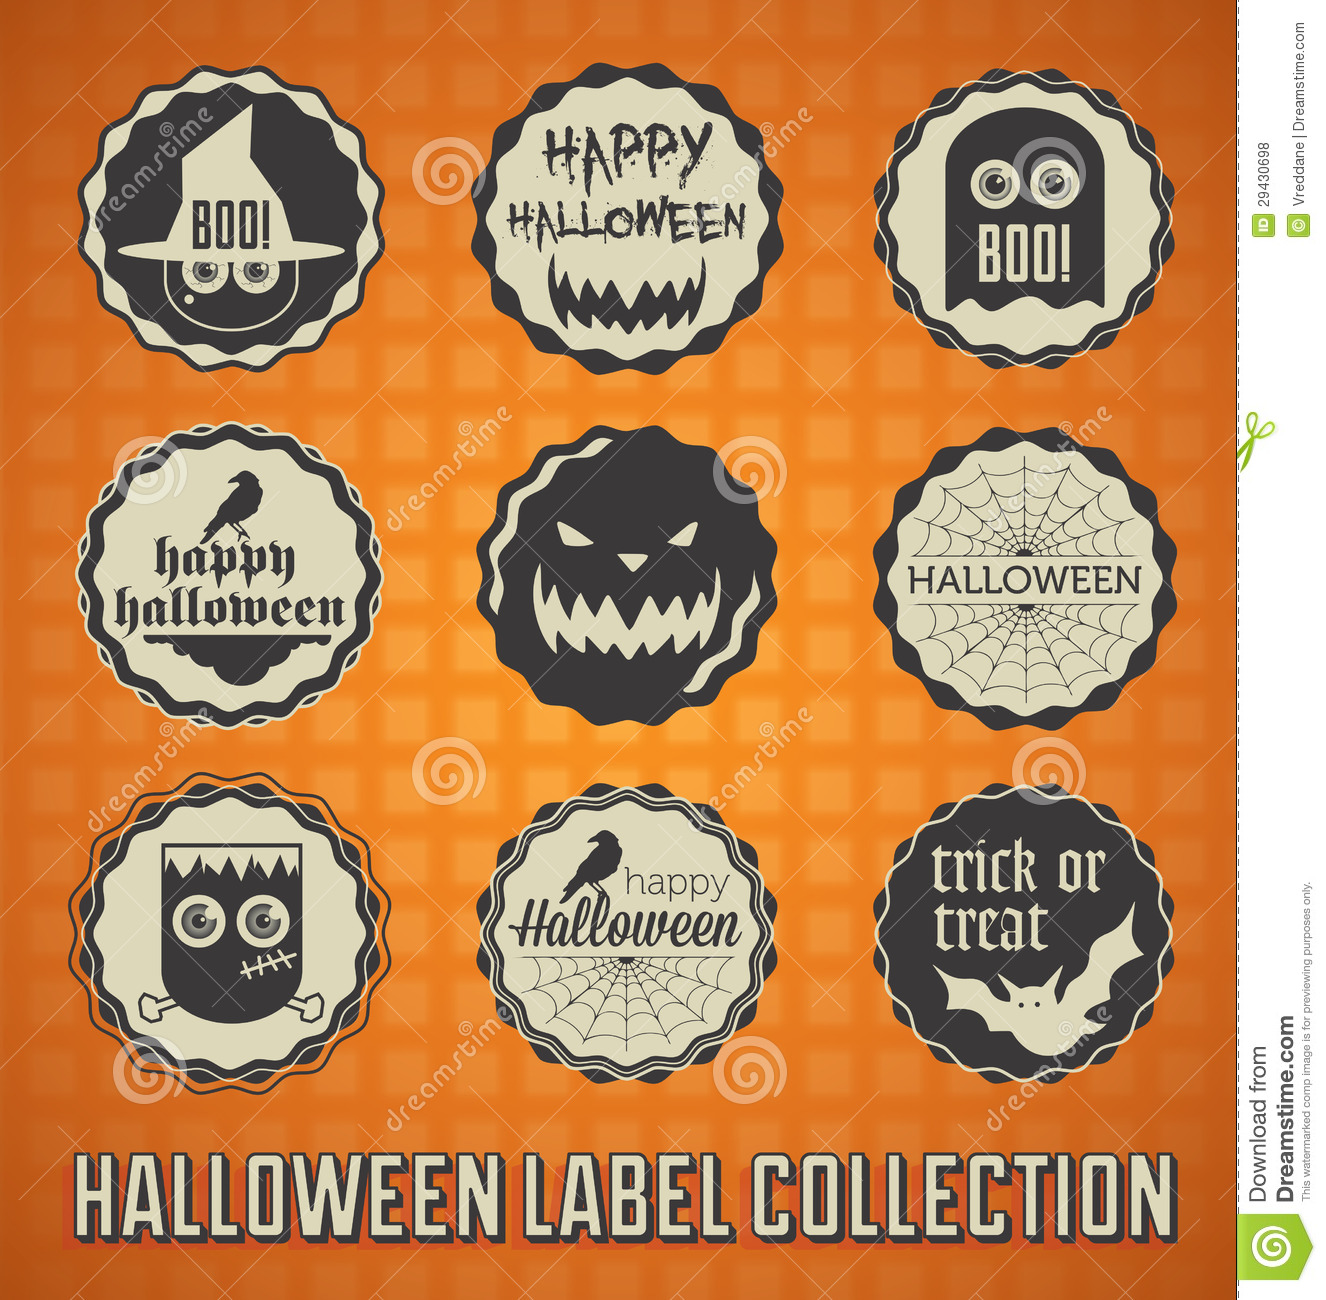 retro happy halloween labels and icons royalty free stock